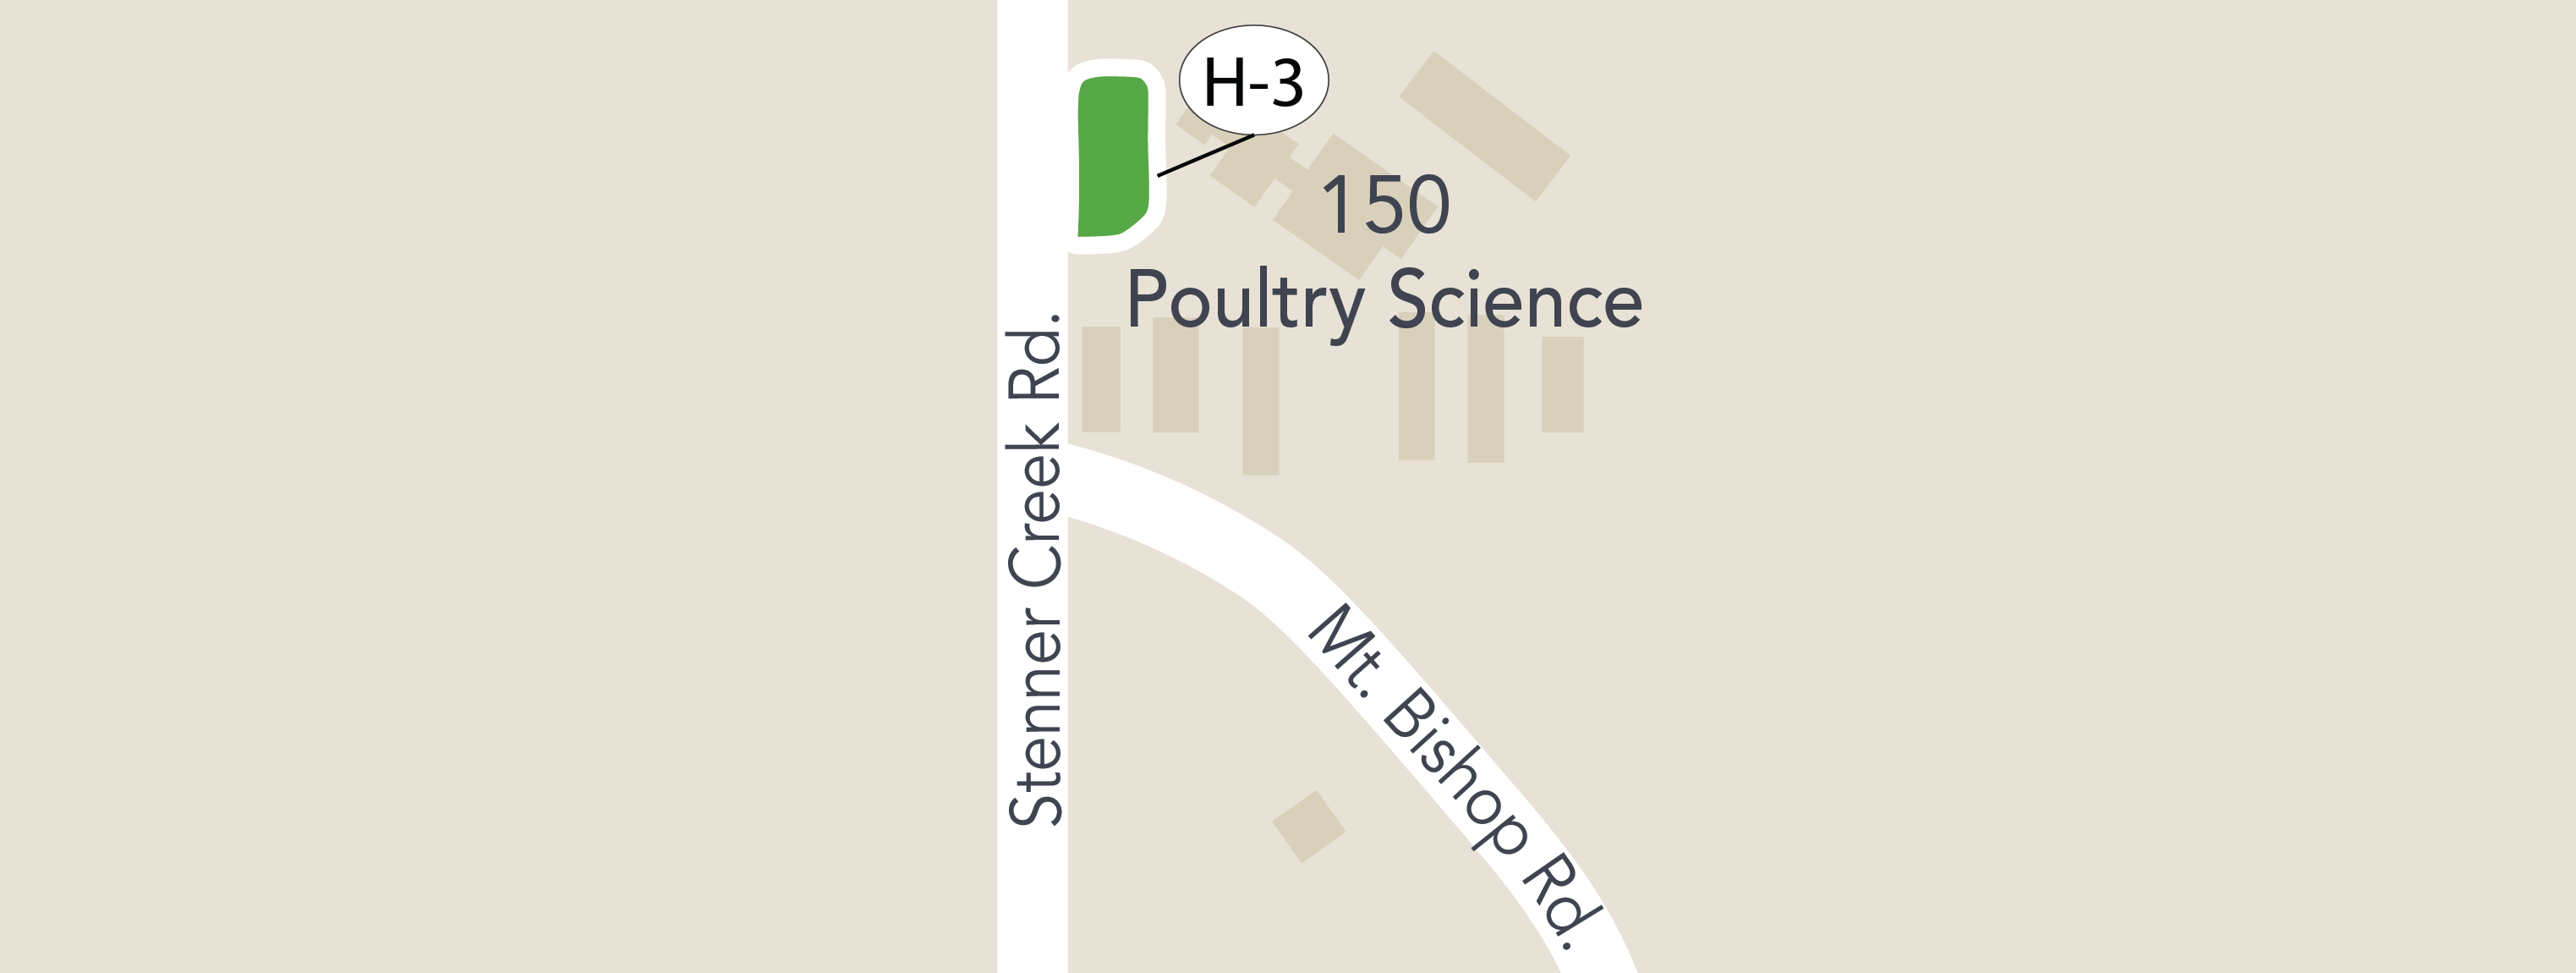 parking Lot Poultry map